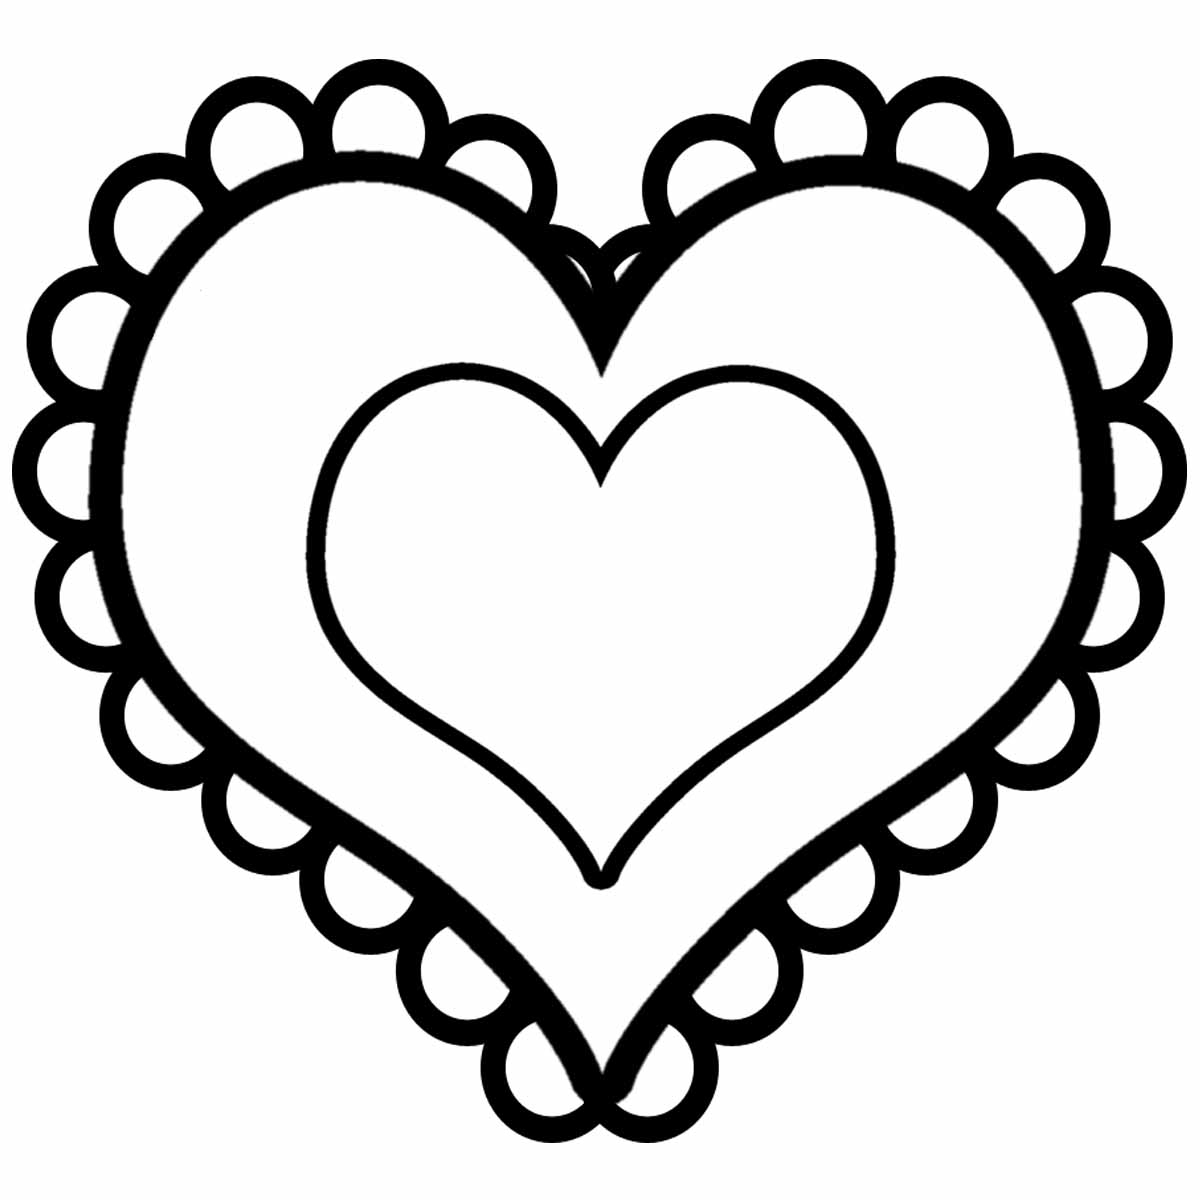 heart for coloring free printable heart coloring pages for kids coloring heart for